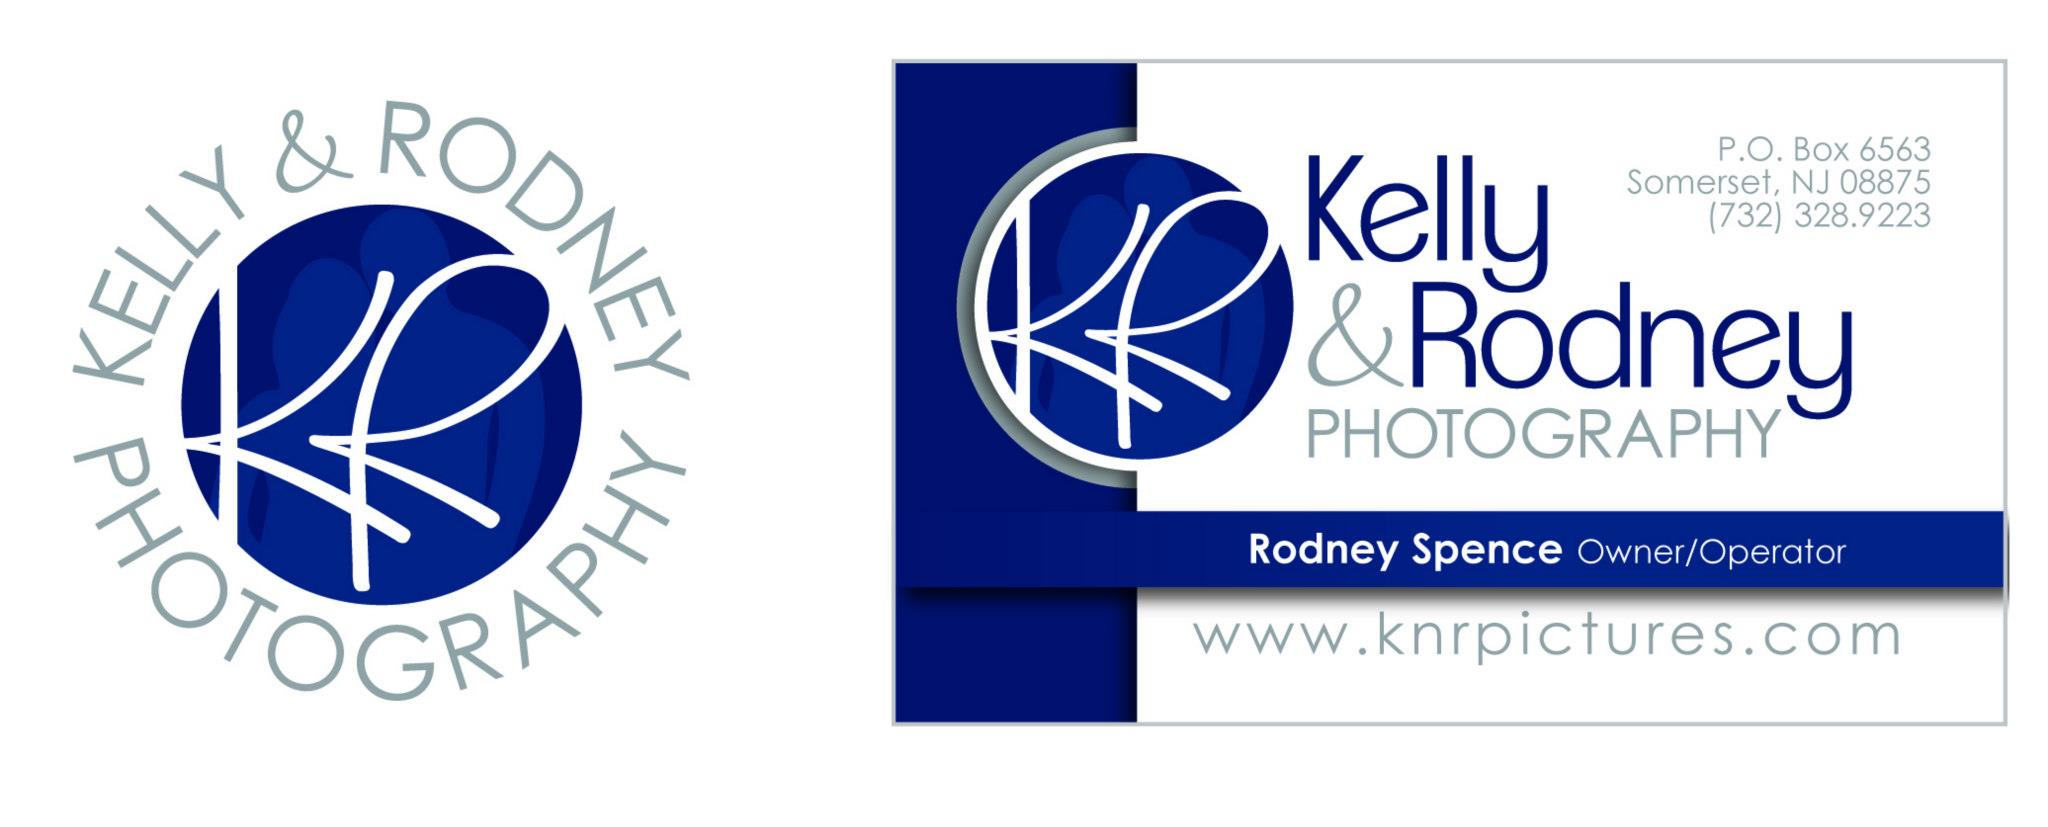 K&R Photography Business Card & Watermark